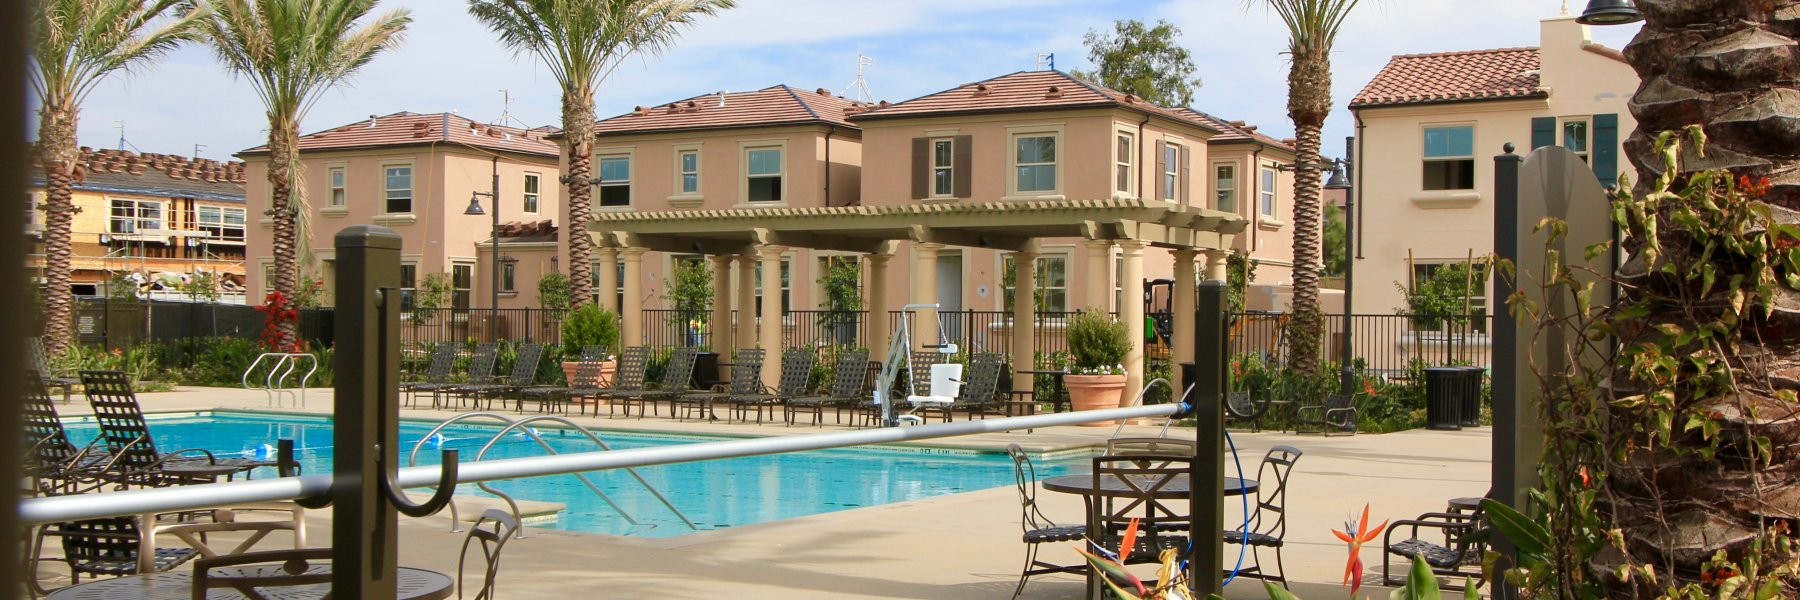 Cypress Village is a community of homes in Irvine California